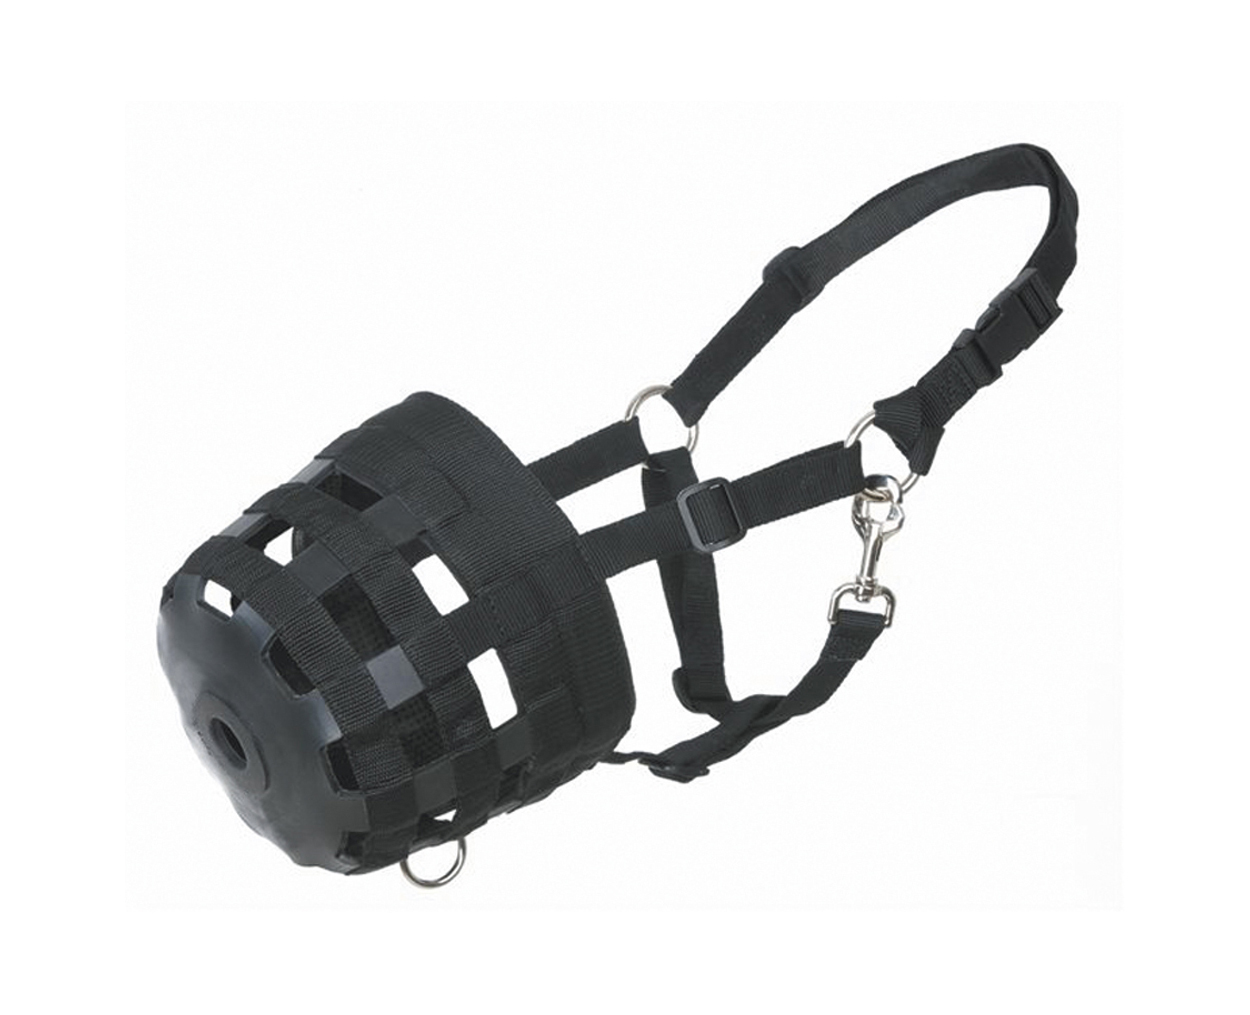 Nylon and Neoprene muzzle